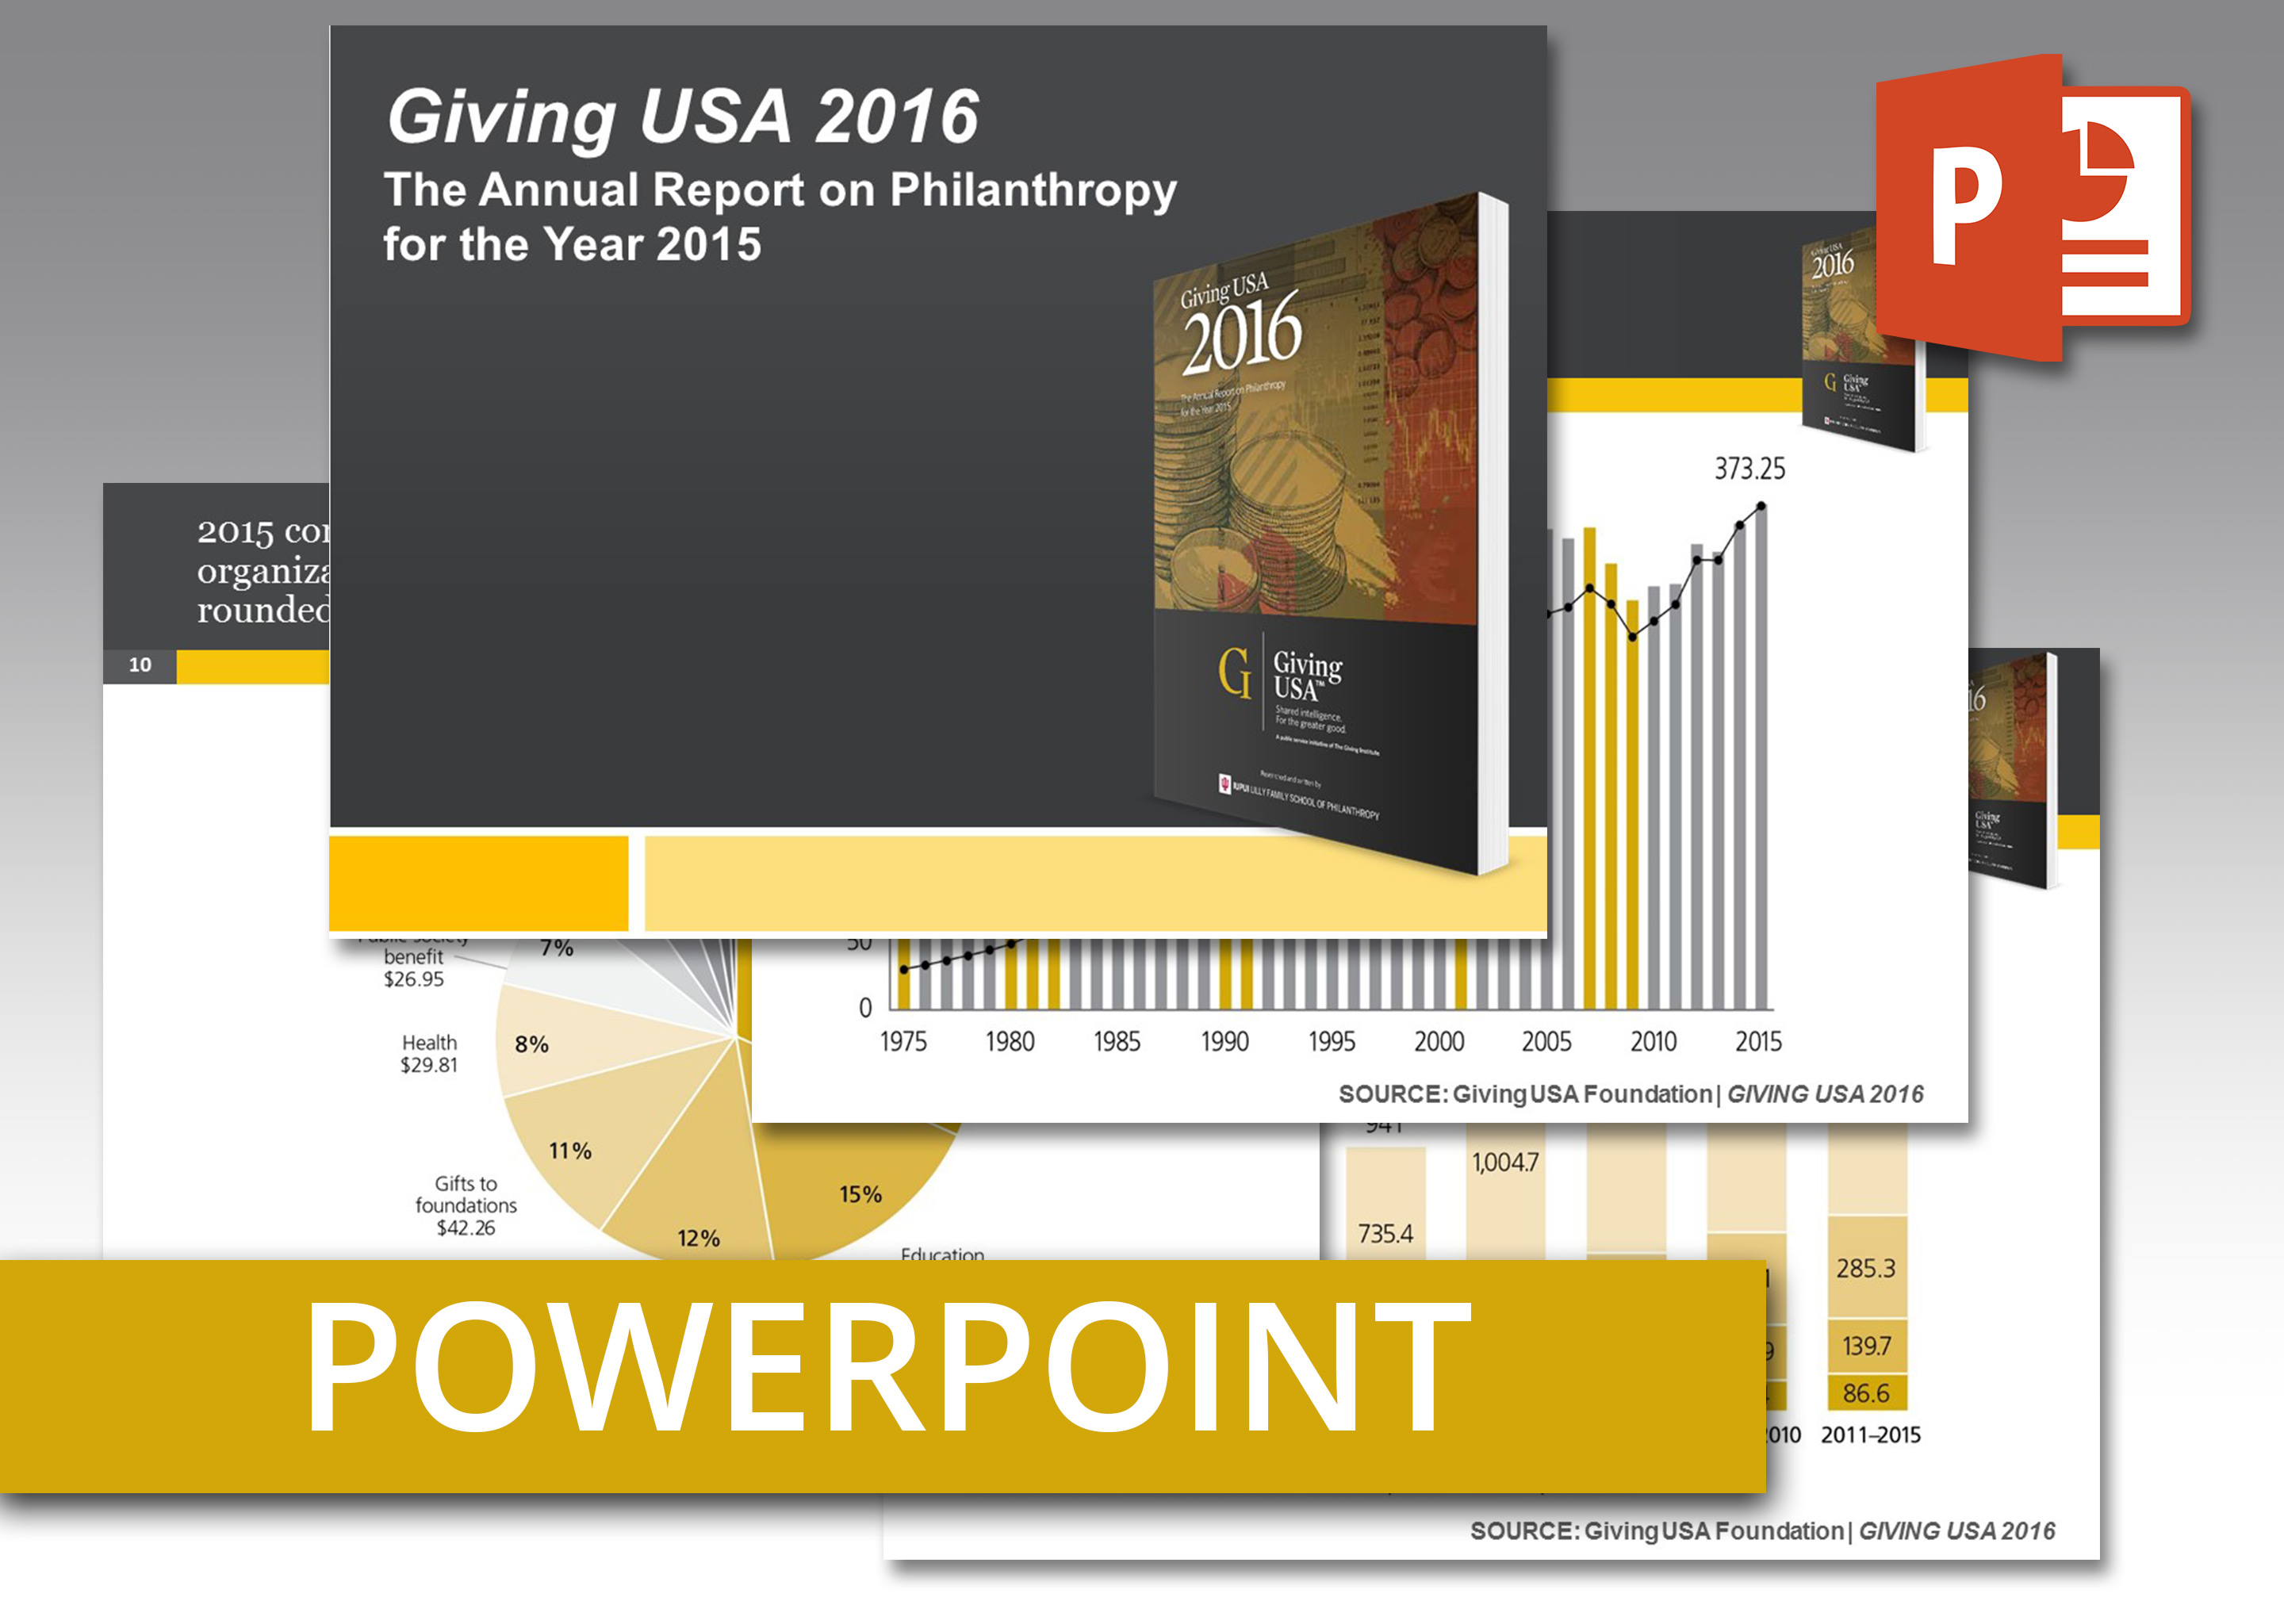 Coolmathgamesus  Unique Giving Usa  Powerpoint An Easytouse Presentation Of Report  With Lovely Giving Usa  Powerpoint An Easytouse Presentation Of Report Findings Including Talking Points With Awesome Free Powerpoint Graphics Library Also Thunks Powerpoint In Addition Presentation Designs Powerpoint And Readymade Powerpoint Presentation As Well As Bridge Illustration Powerpoint Additionally  Powerpoint Viewer From Givingusaorg With Coolmathgamesus  Lovely Giving Usa  Powerpoint An Easytouse Presentation Of Report  With Awesome Giving Usa  Powerpoint An Easytouse Presentation Of Report Findings Including Talking Points And Unique Free Powerpoint Graphics Library Also Thunks Powerpoint In Addition Presentation Designs Powerpoint From Givingusaorg